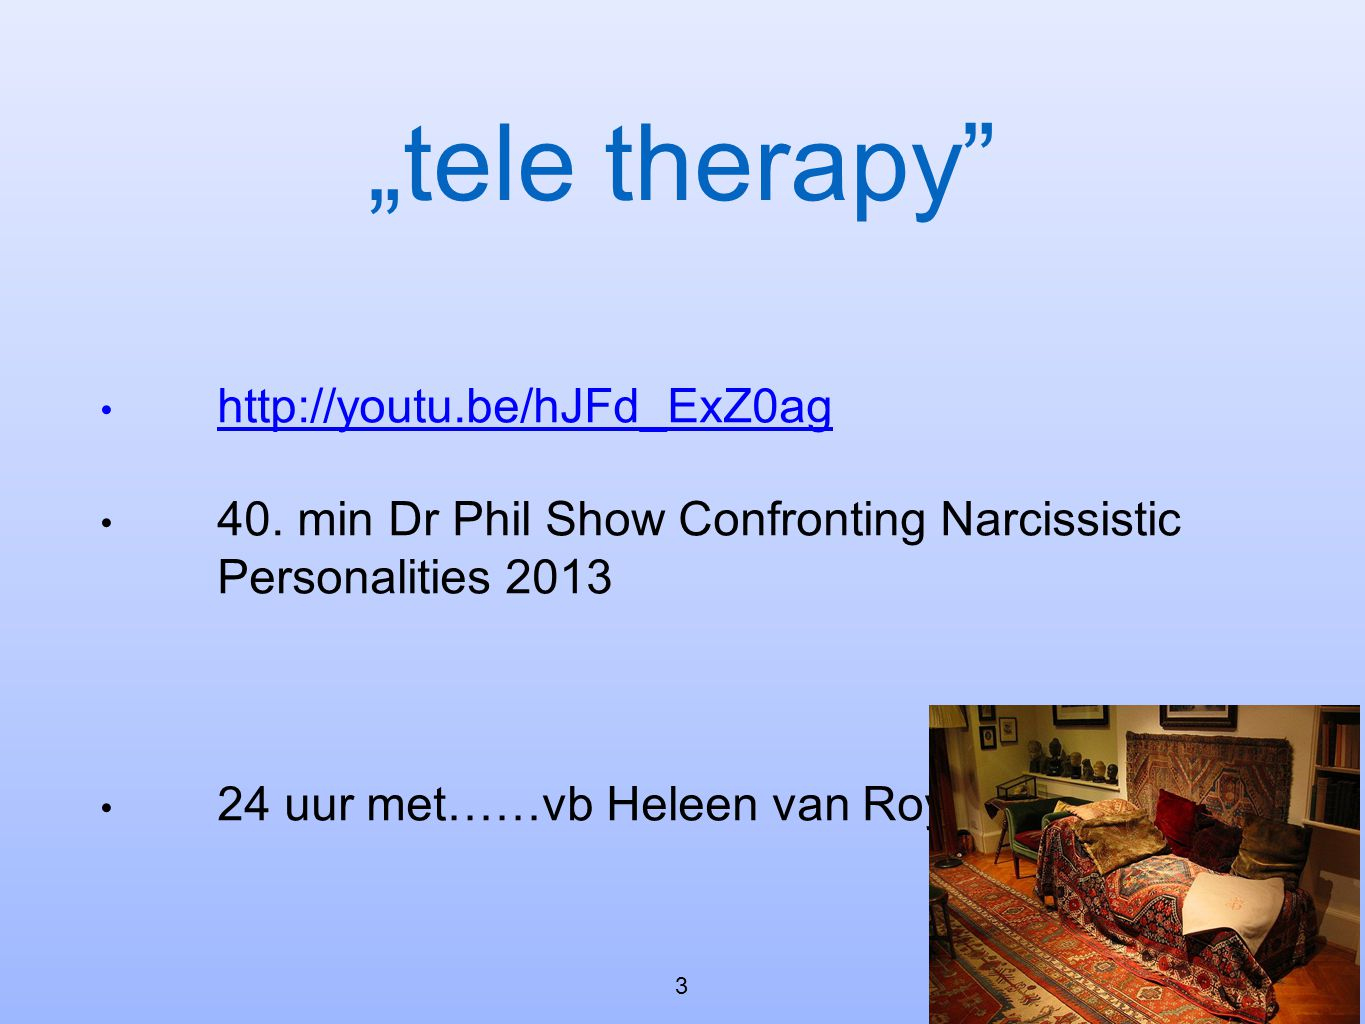 """tele therapy http://youtu.be/hJFd_ExZ0ag"